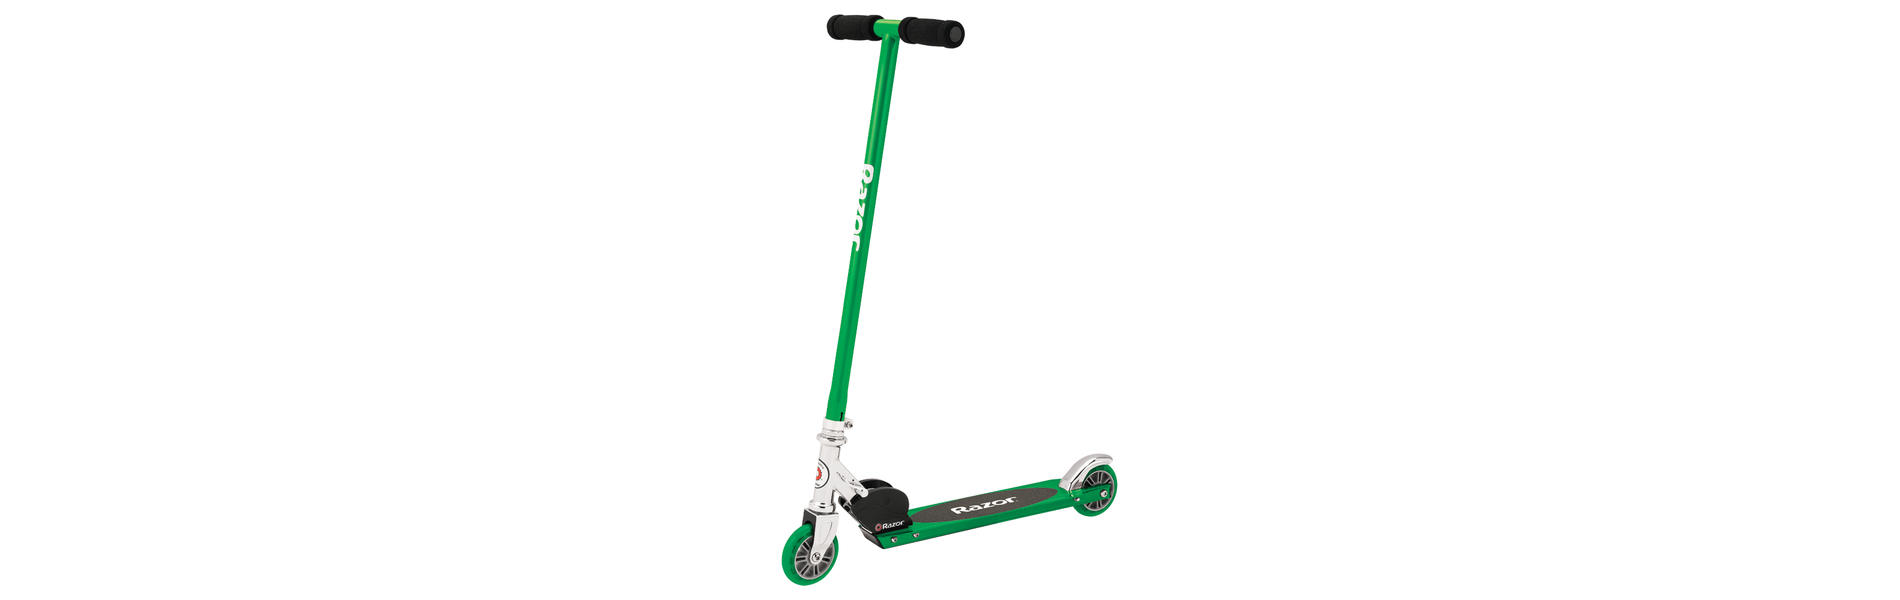 S SCOOTER - GREEN